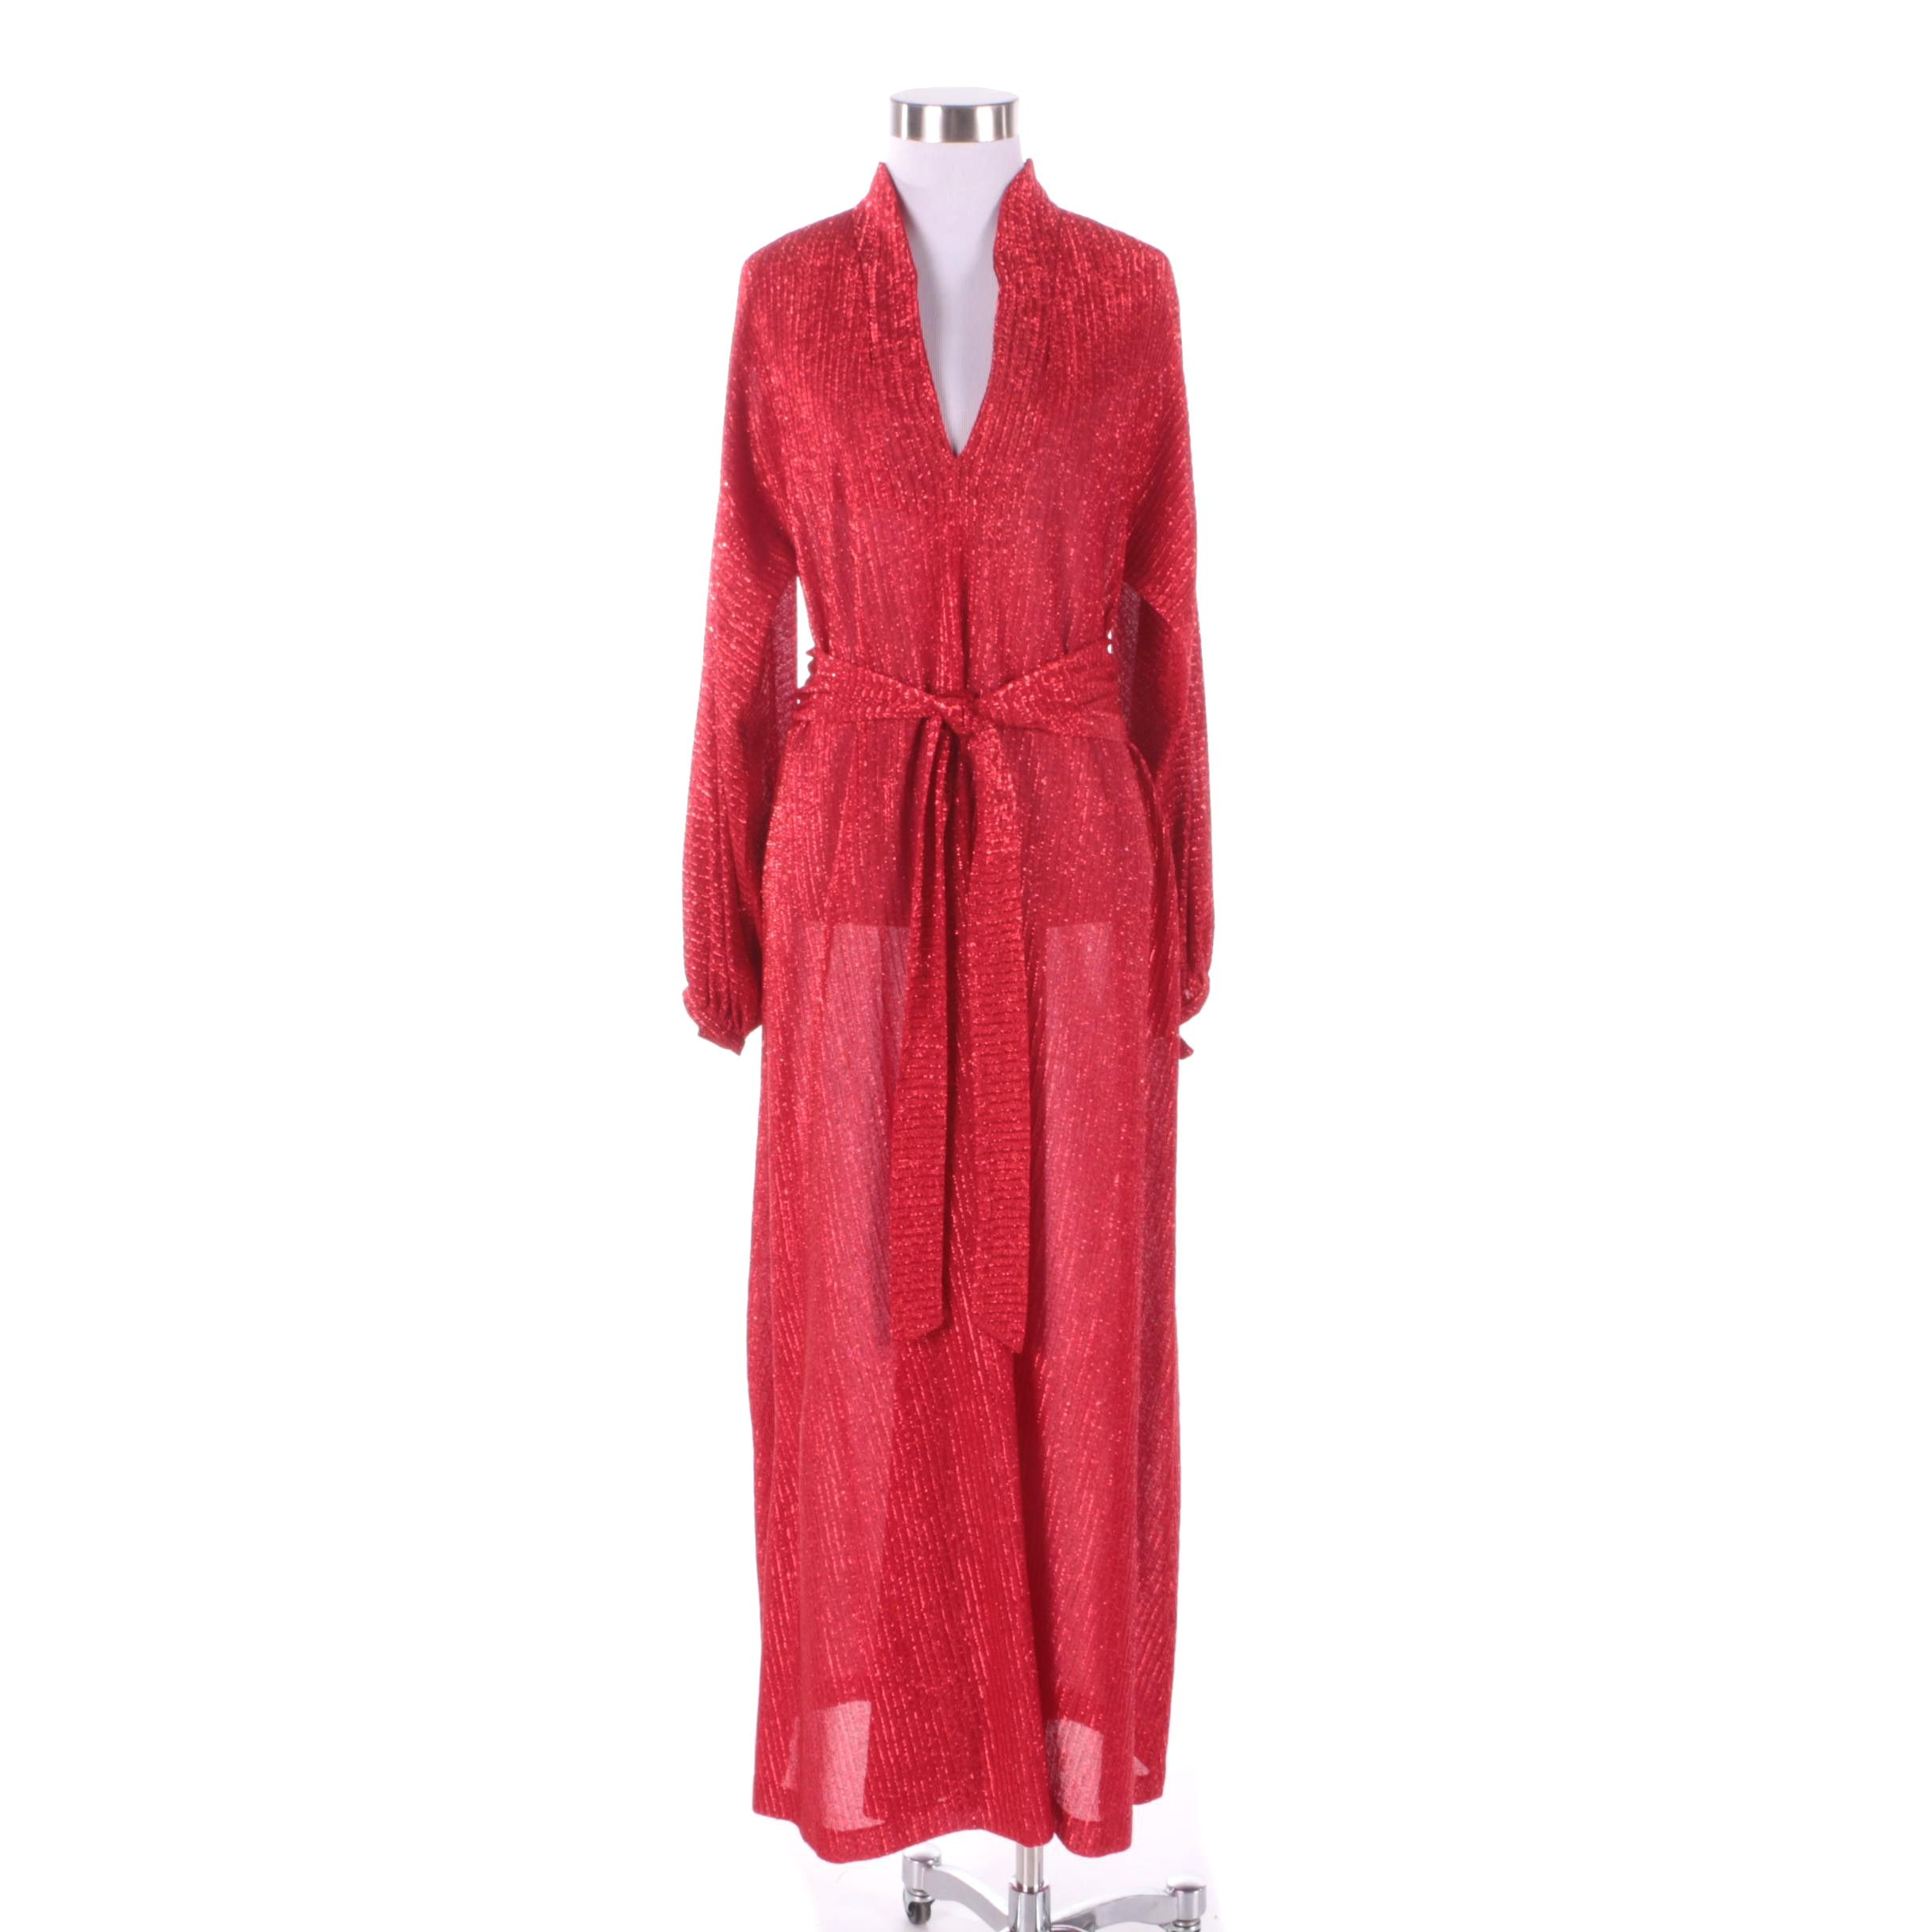 1970s Vintage Halston IV Red Dress with Metallic Threading